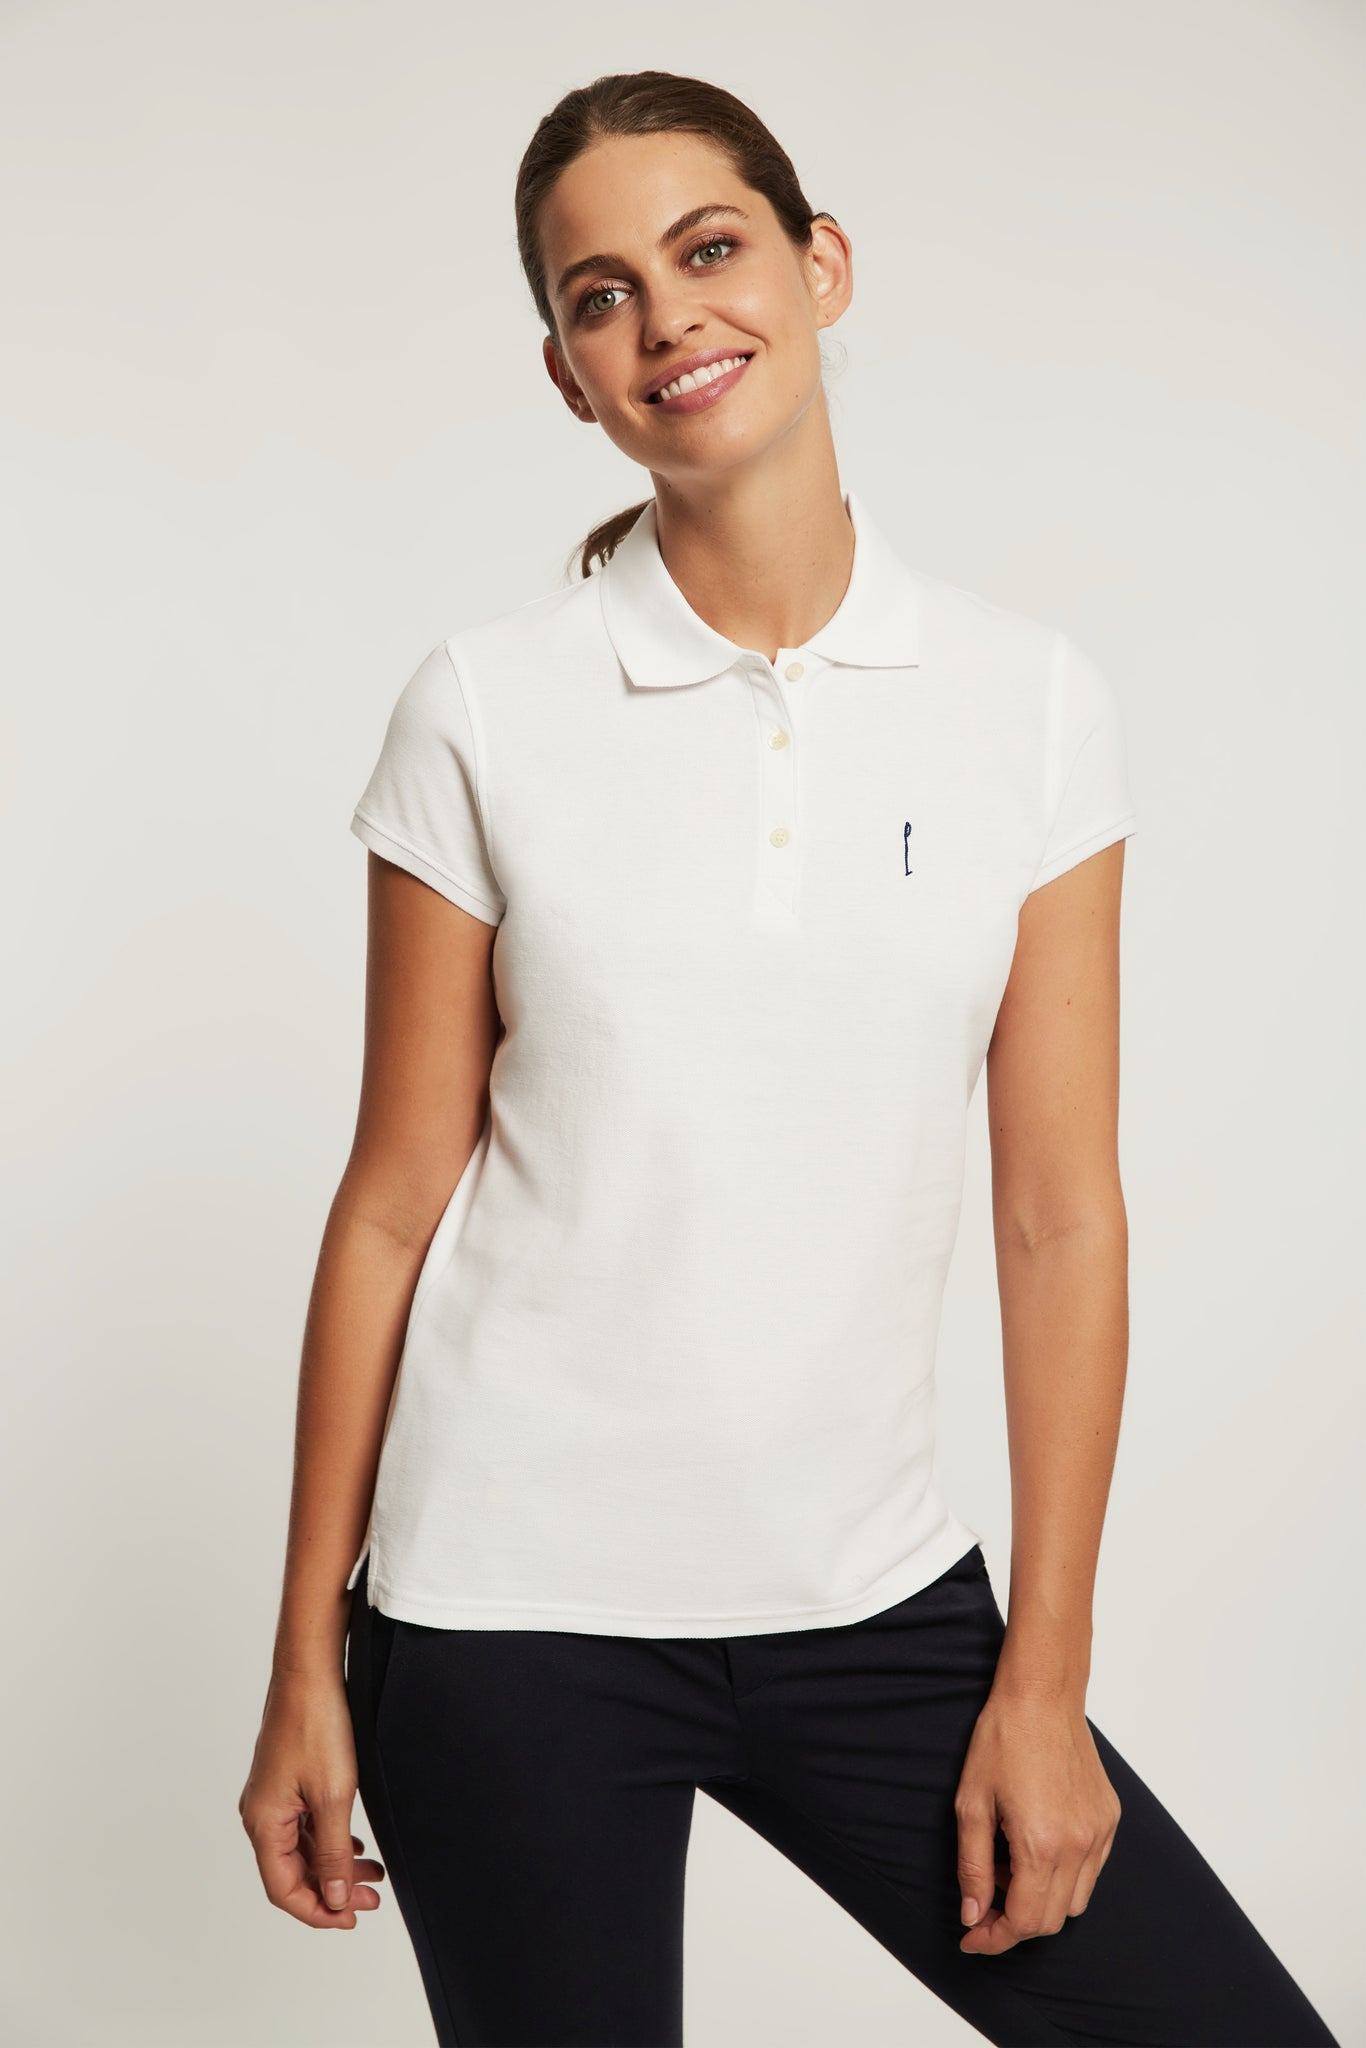 Custom fit white polo shirt with embroidery